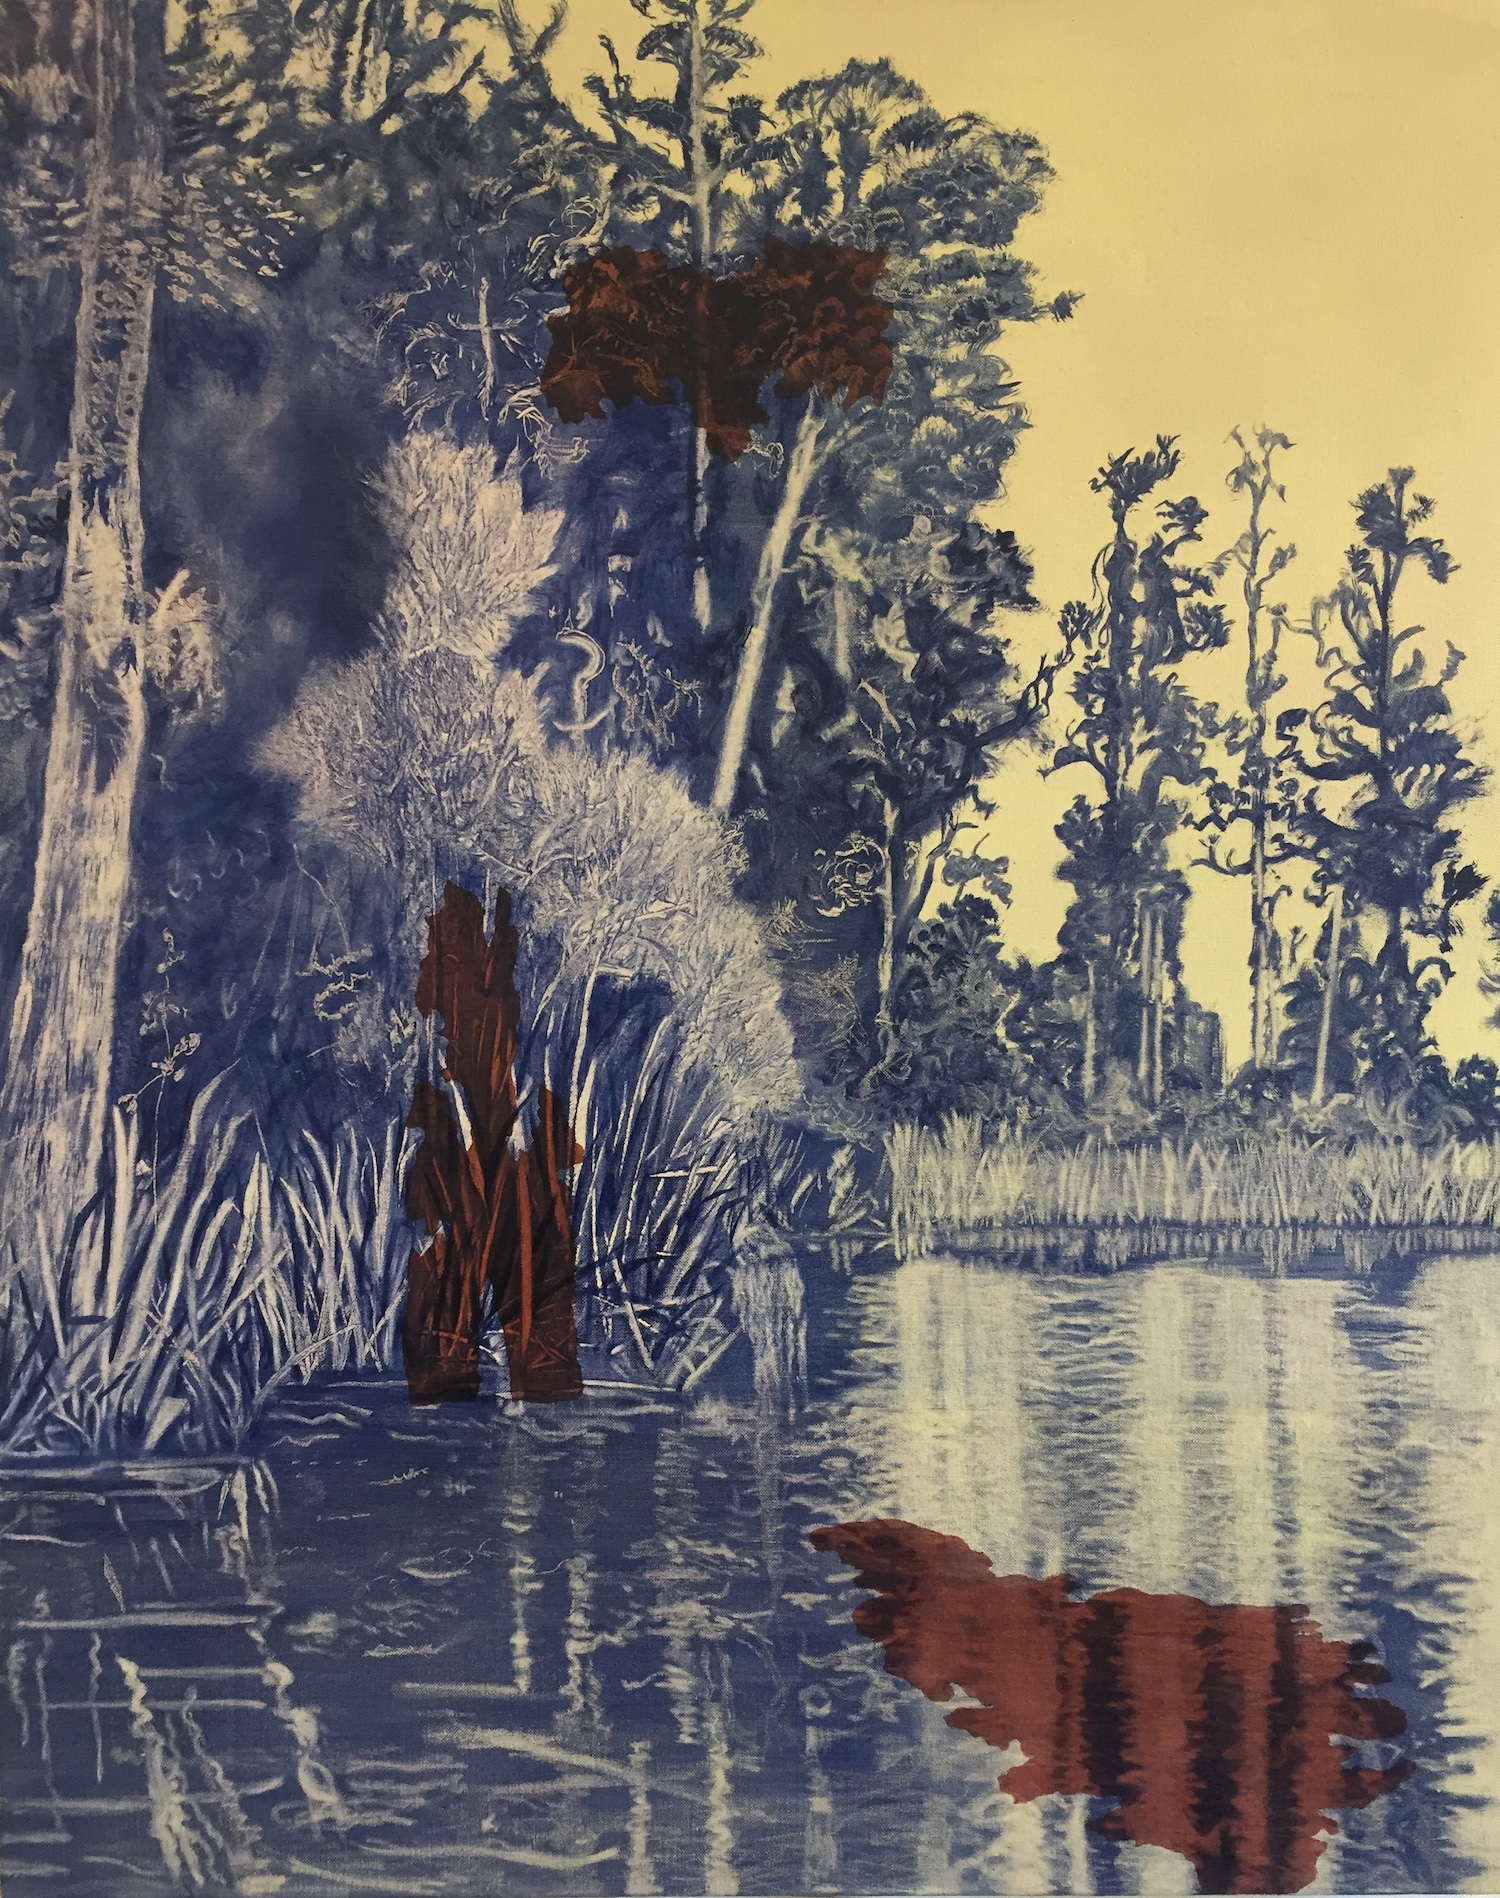 Arnold River. Robyn Litchfield. Jackson's Painting Prize.